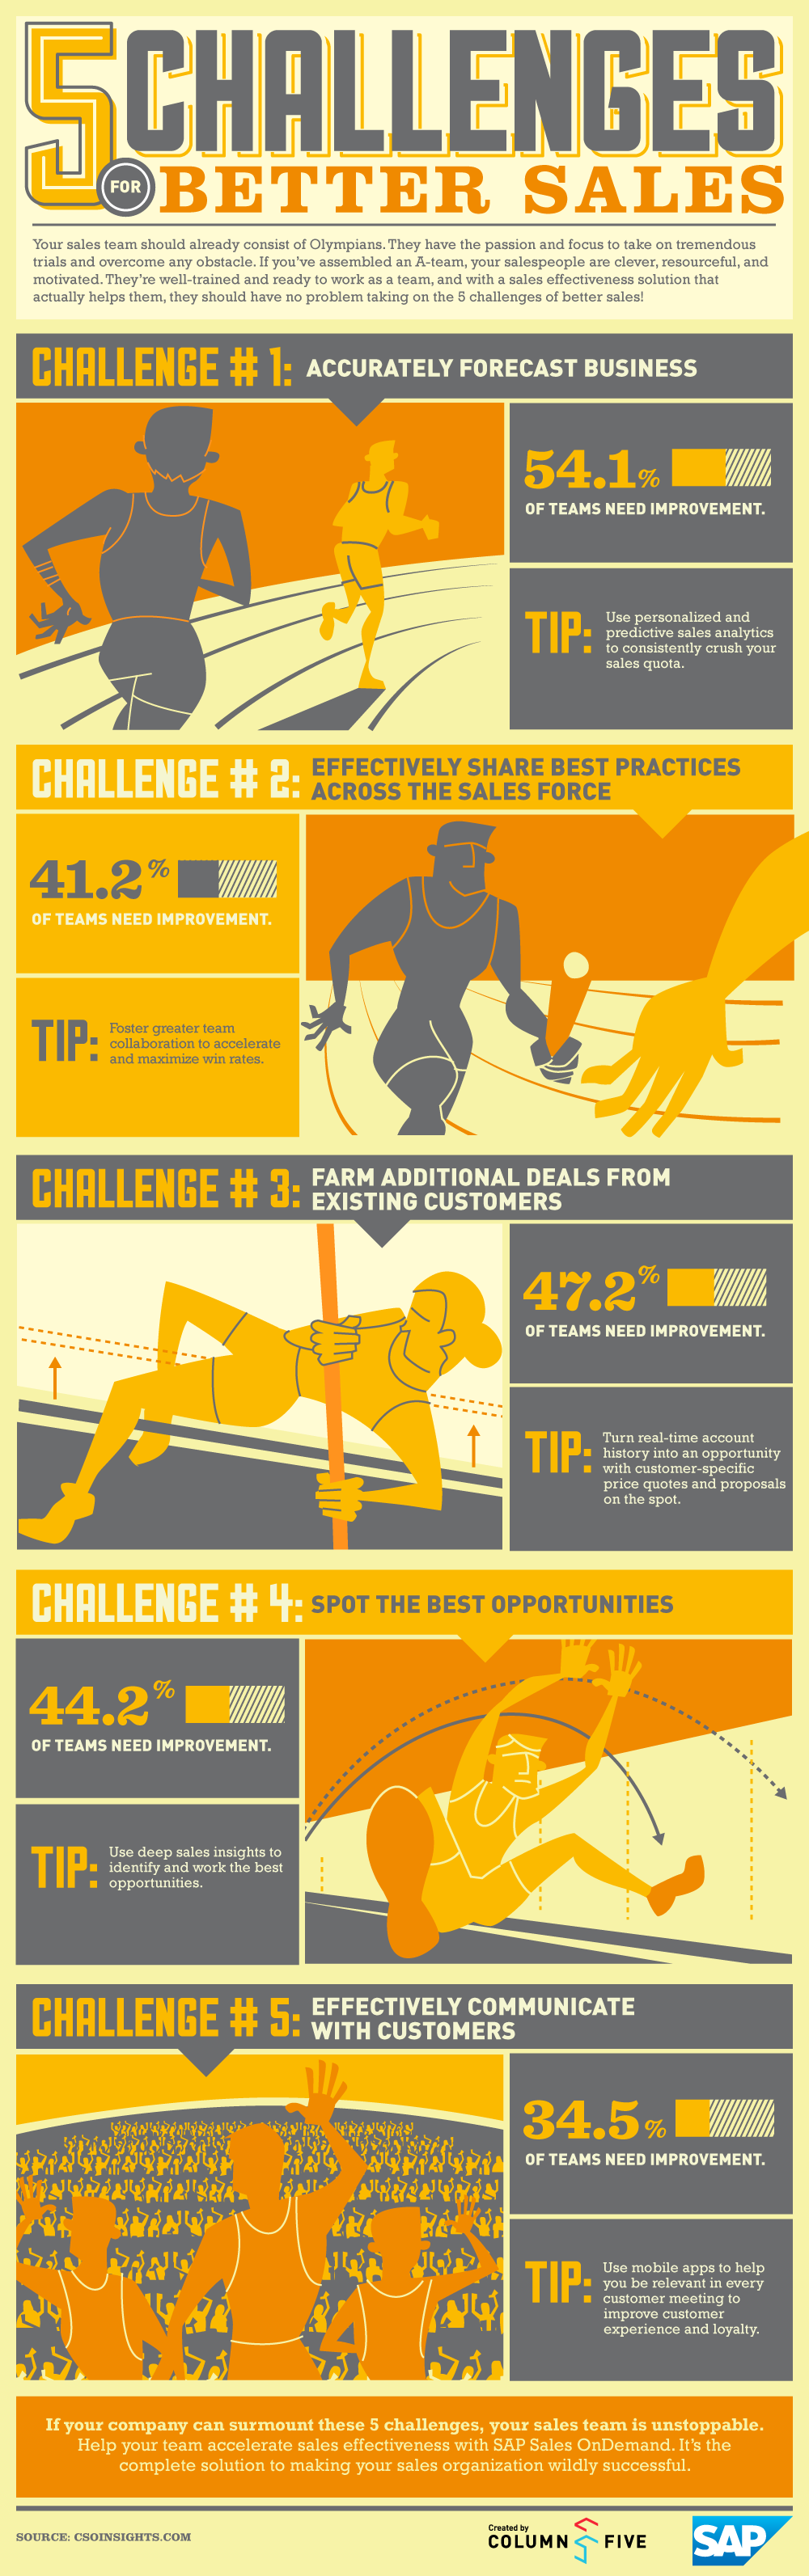 Challenges for Better Sales